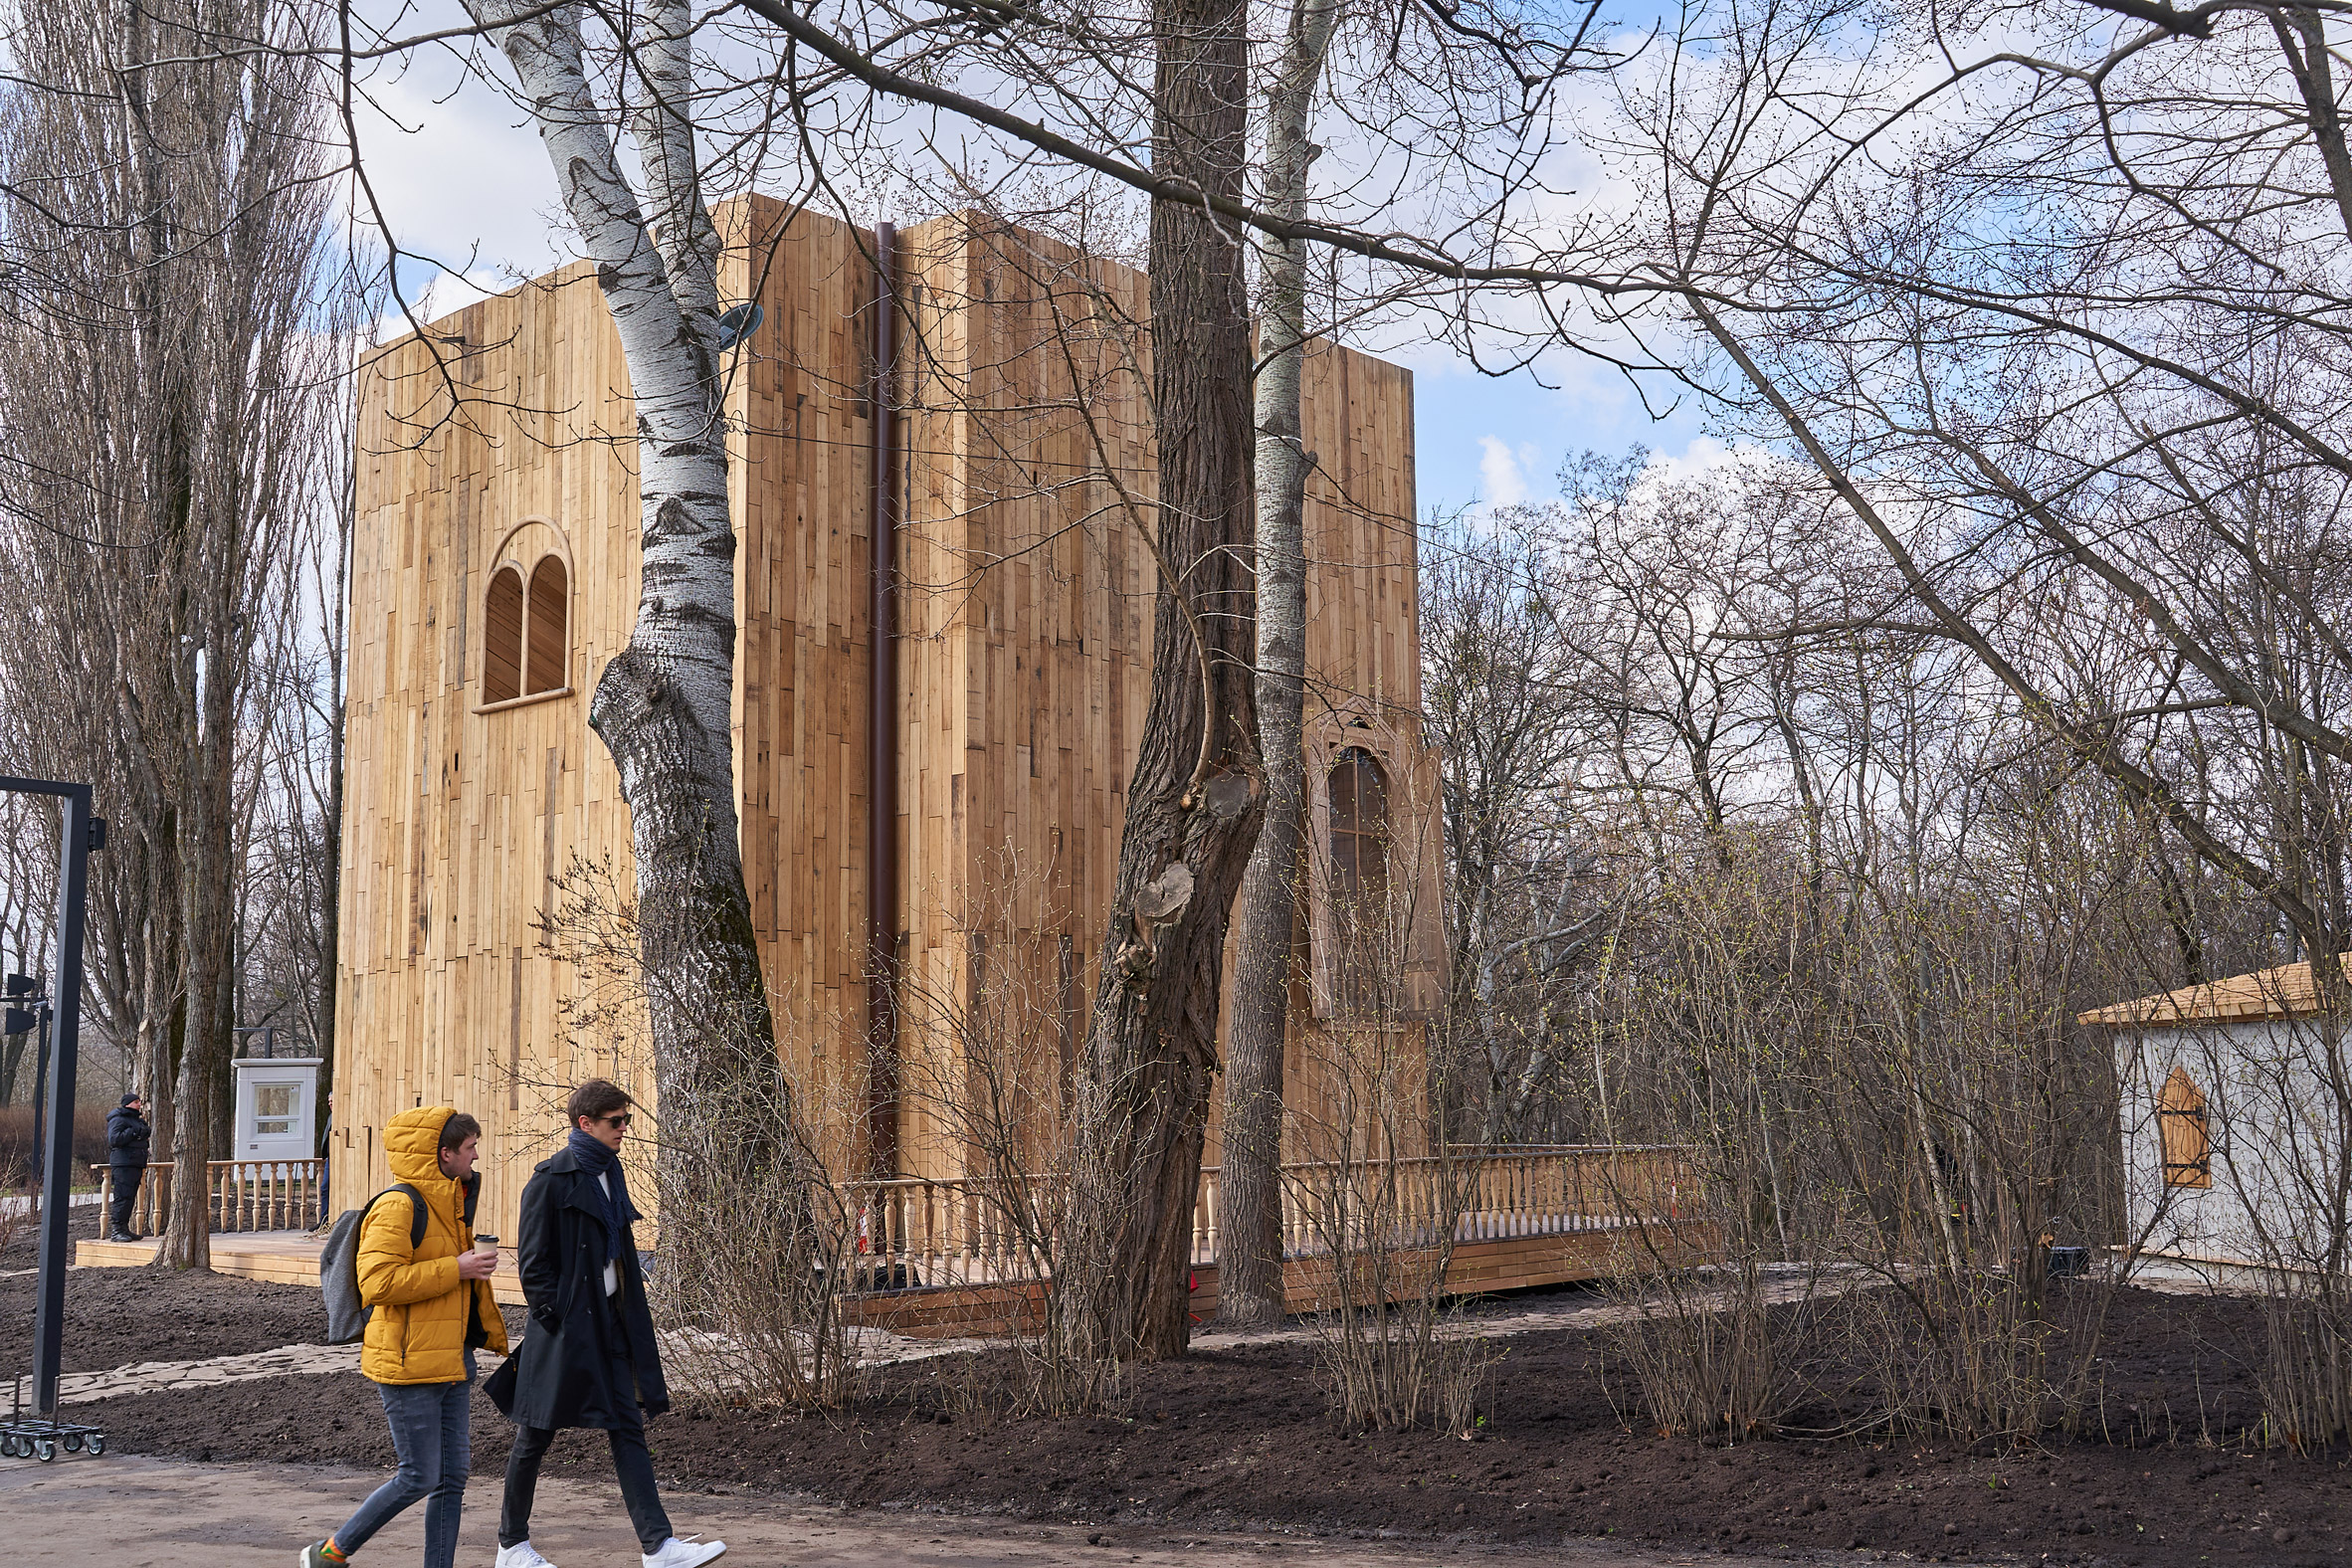 Timber building that looks like a book